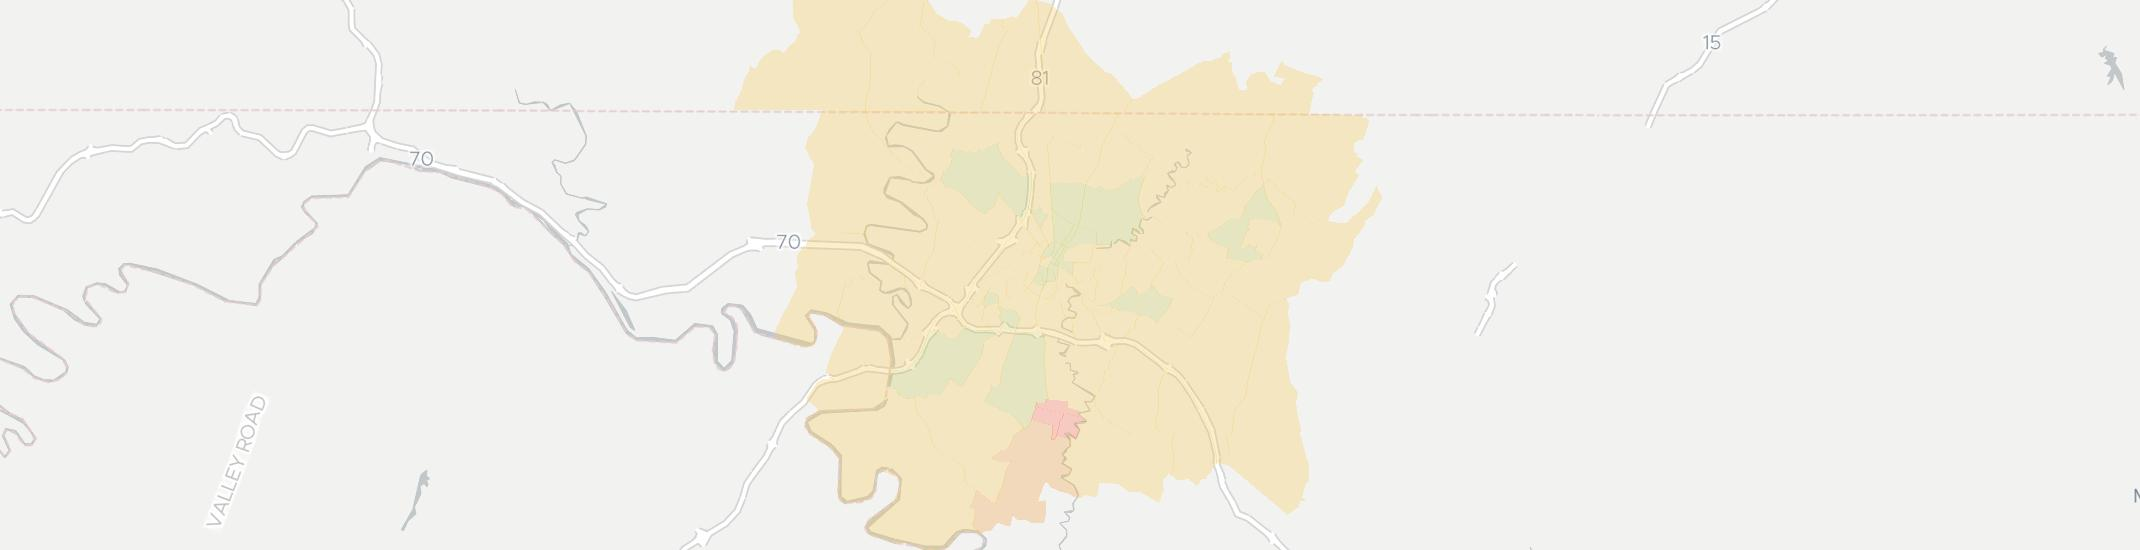 Hagerstown Md Zip Code Map.Internet Providers In Hagerstown Md Compare 16 Providers